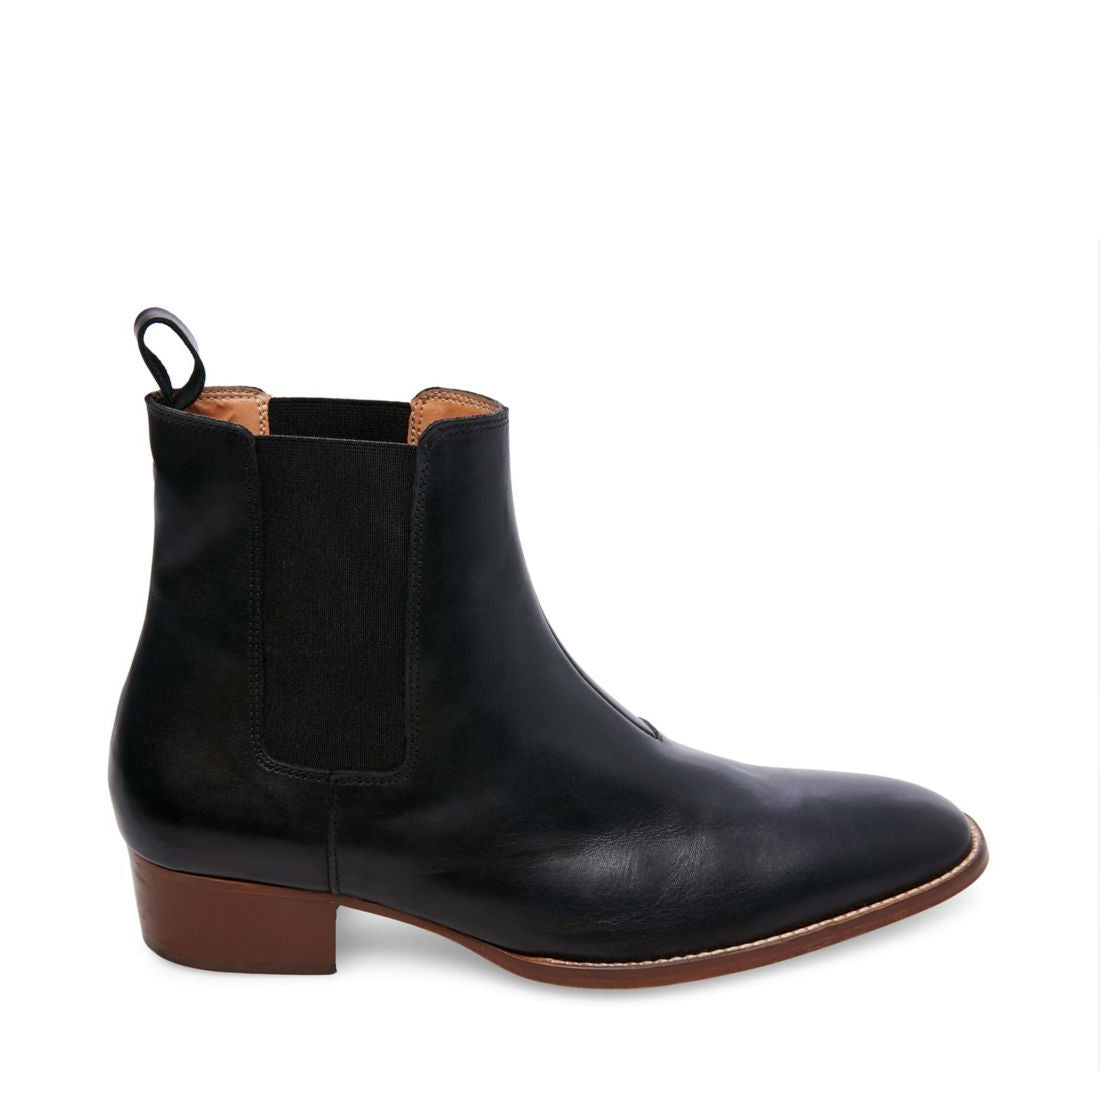 DEX BLACK LEATHER - Steve Madden